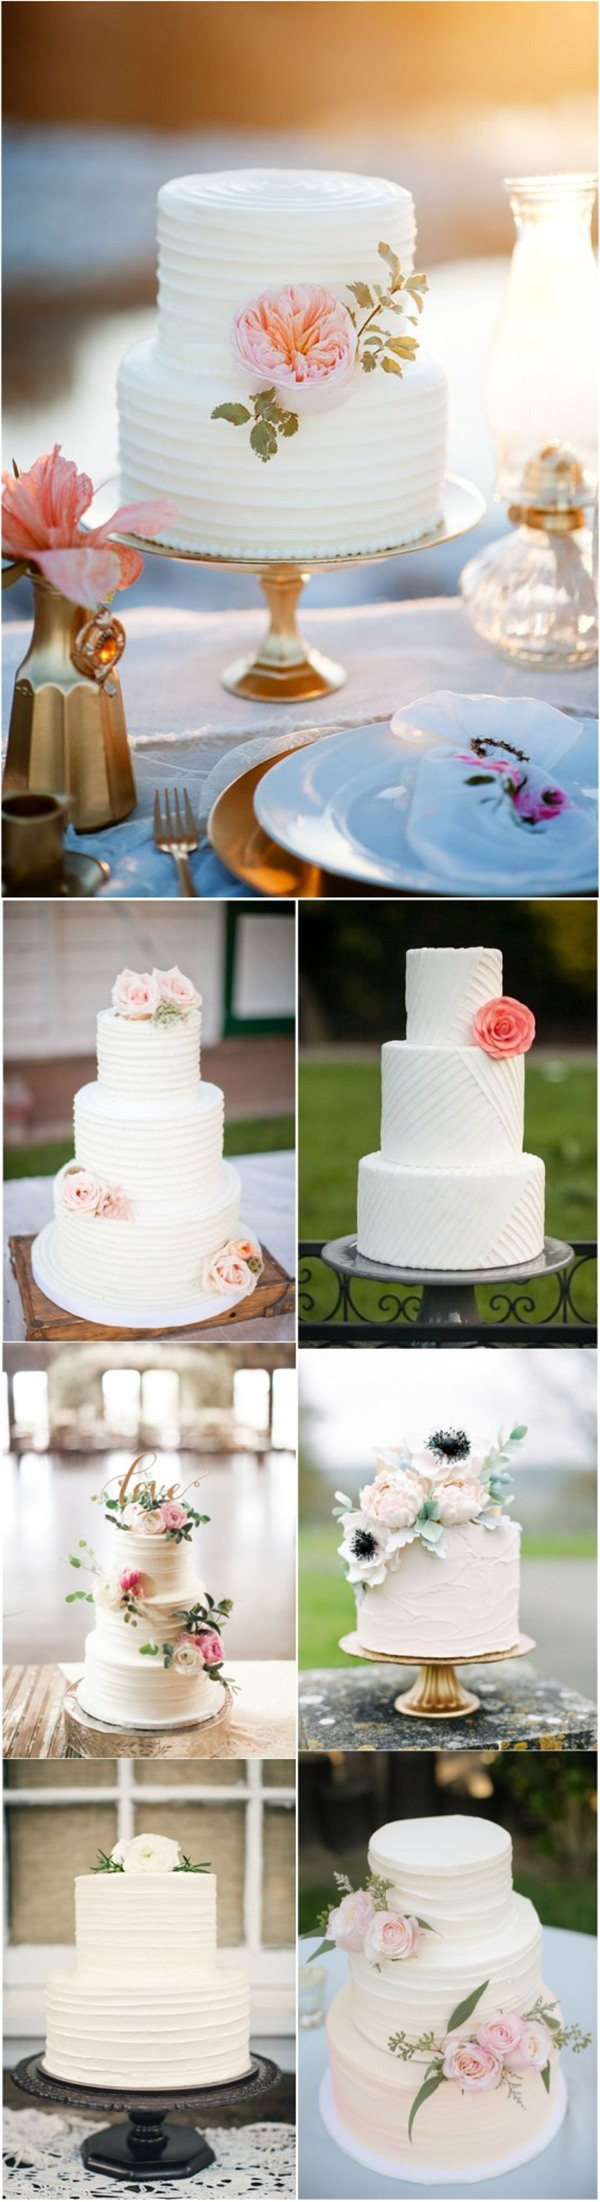 simple wedding cake with flowers 20 simple wedding idea inspirations 20106